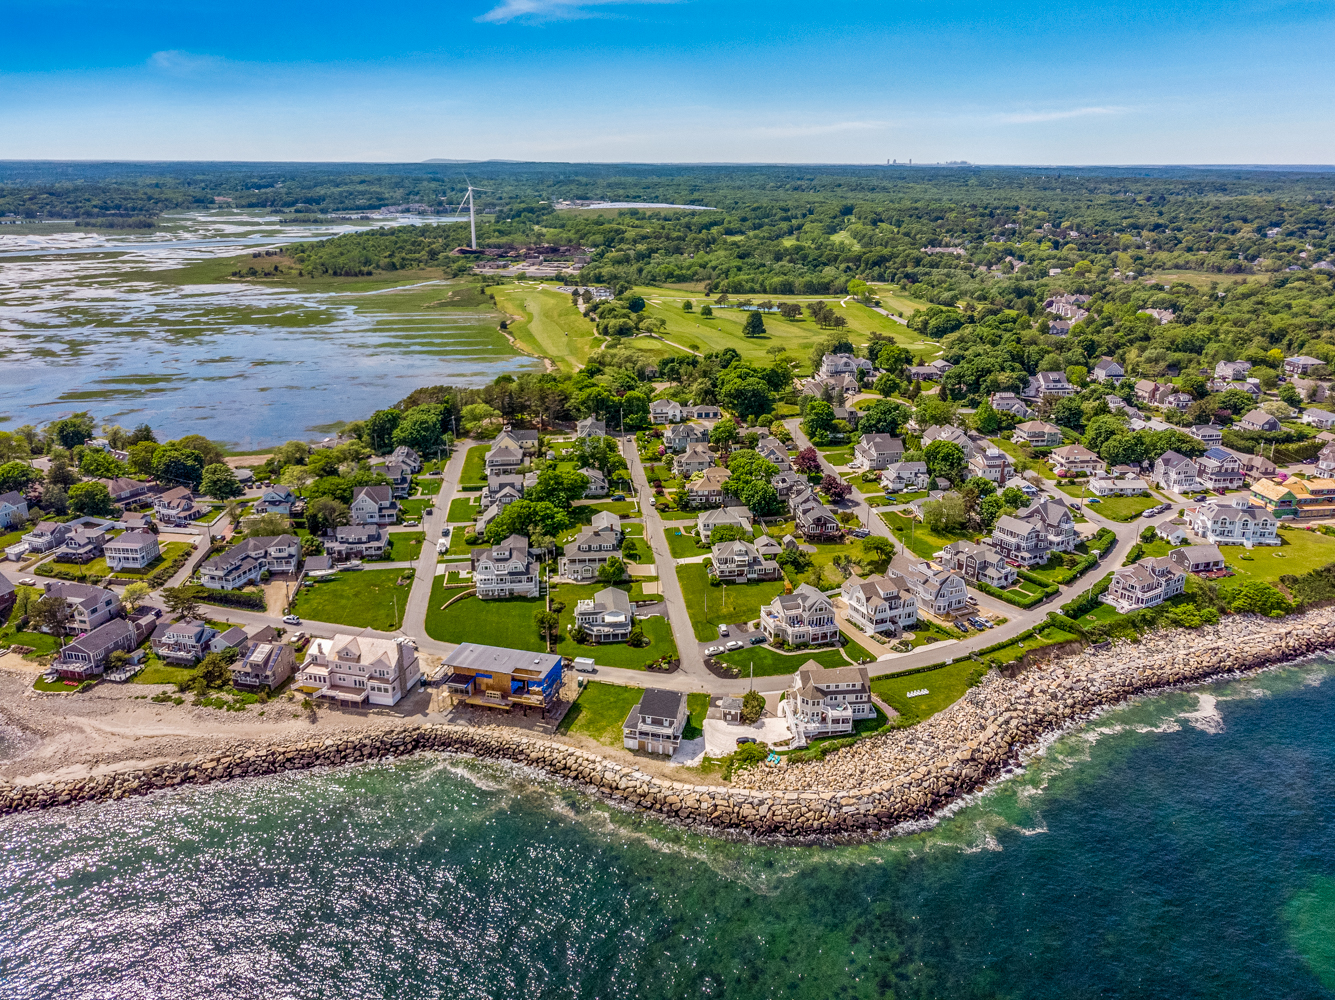 $200 - Up To 5 Aerial Images